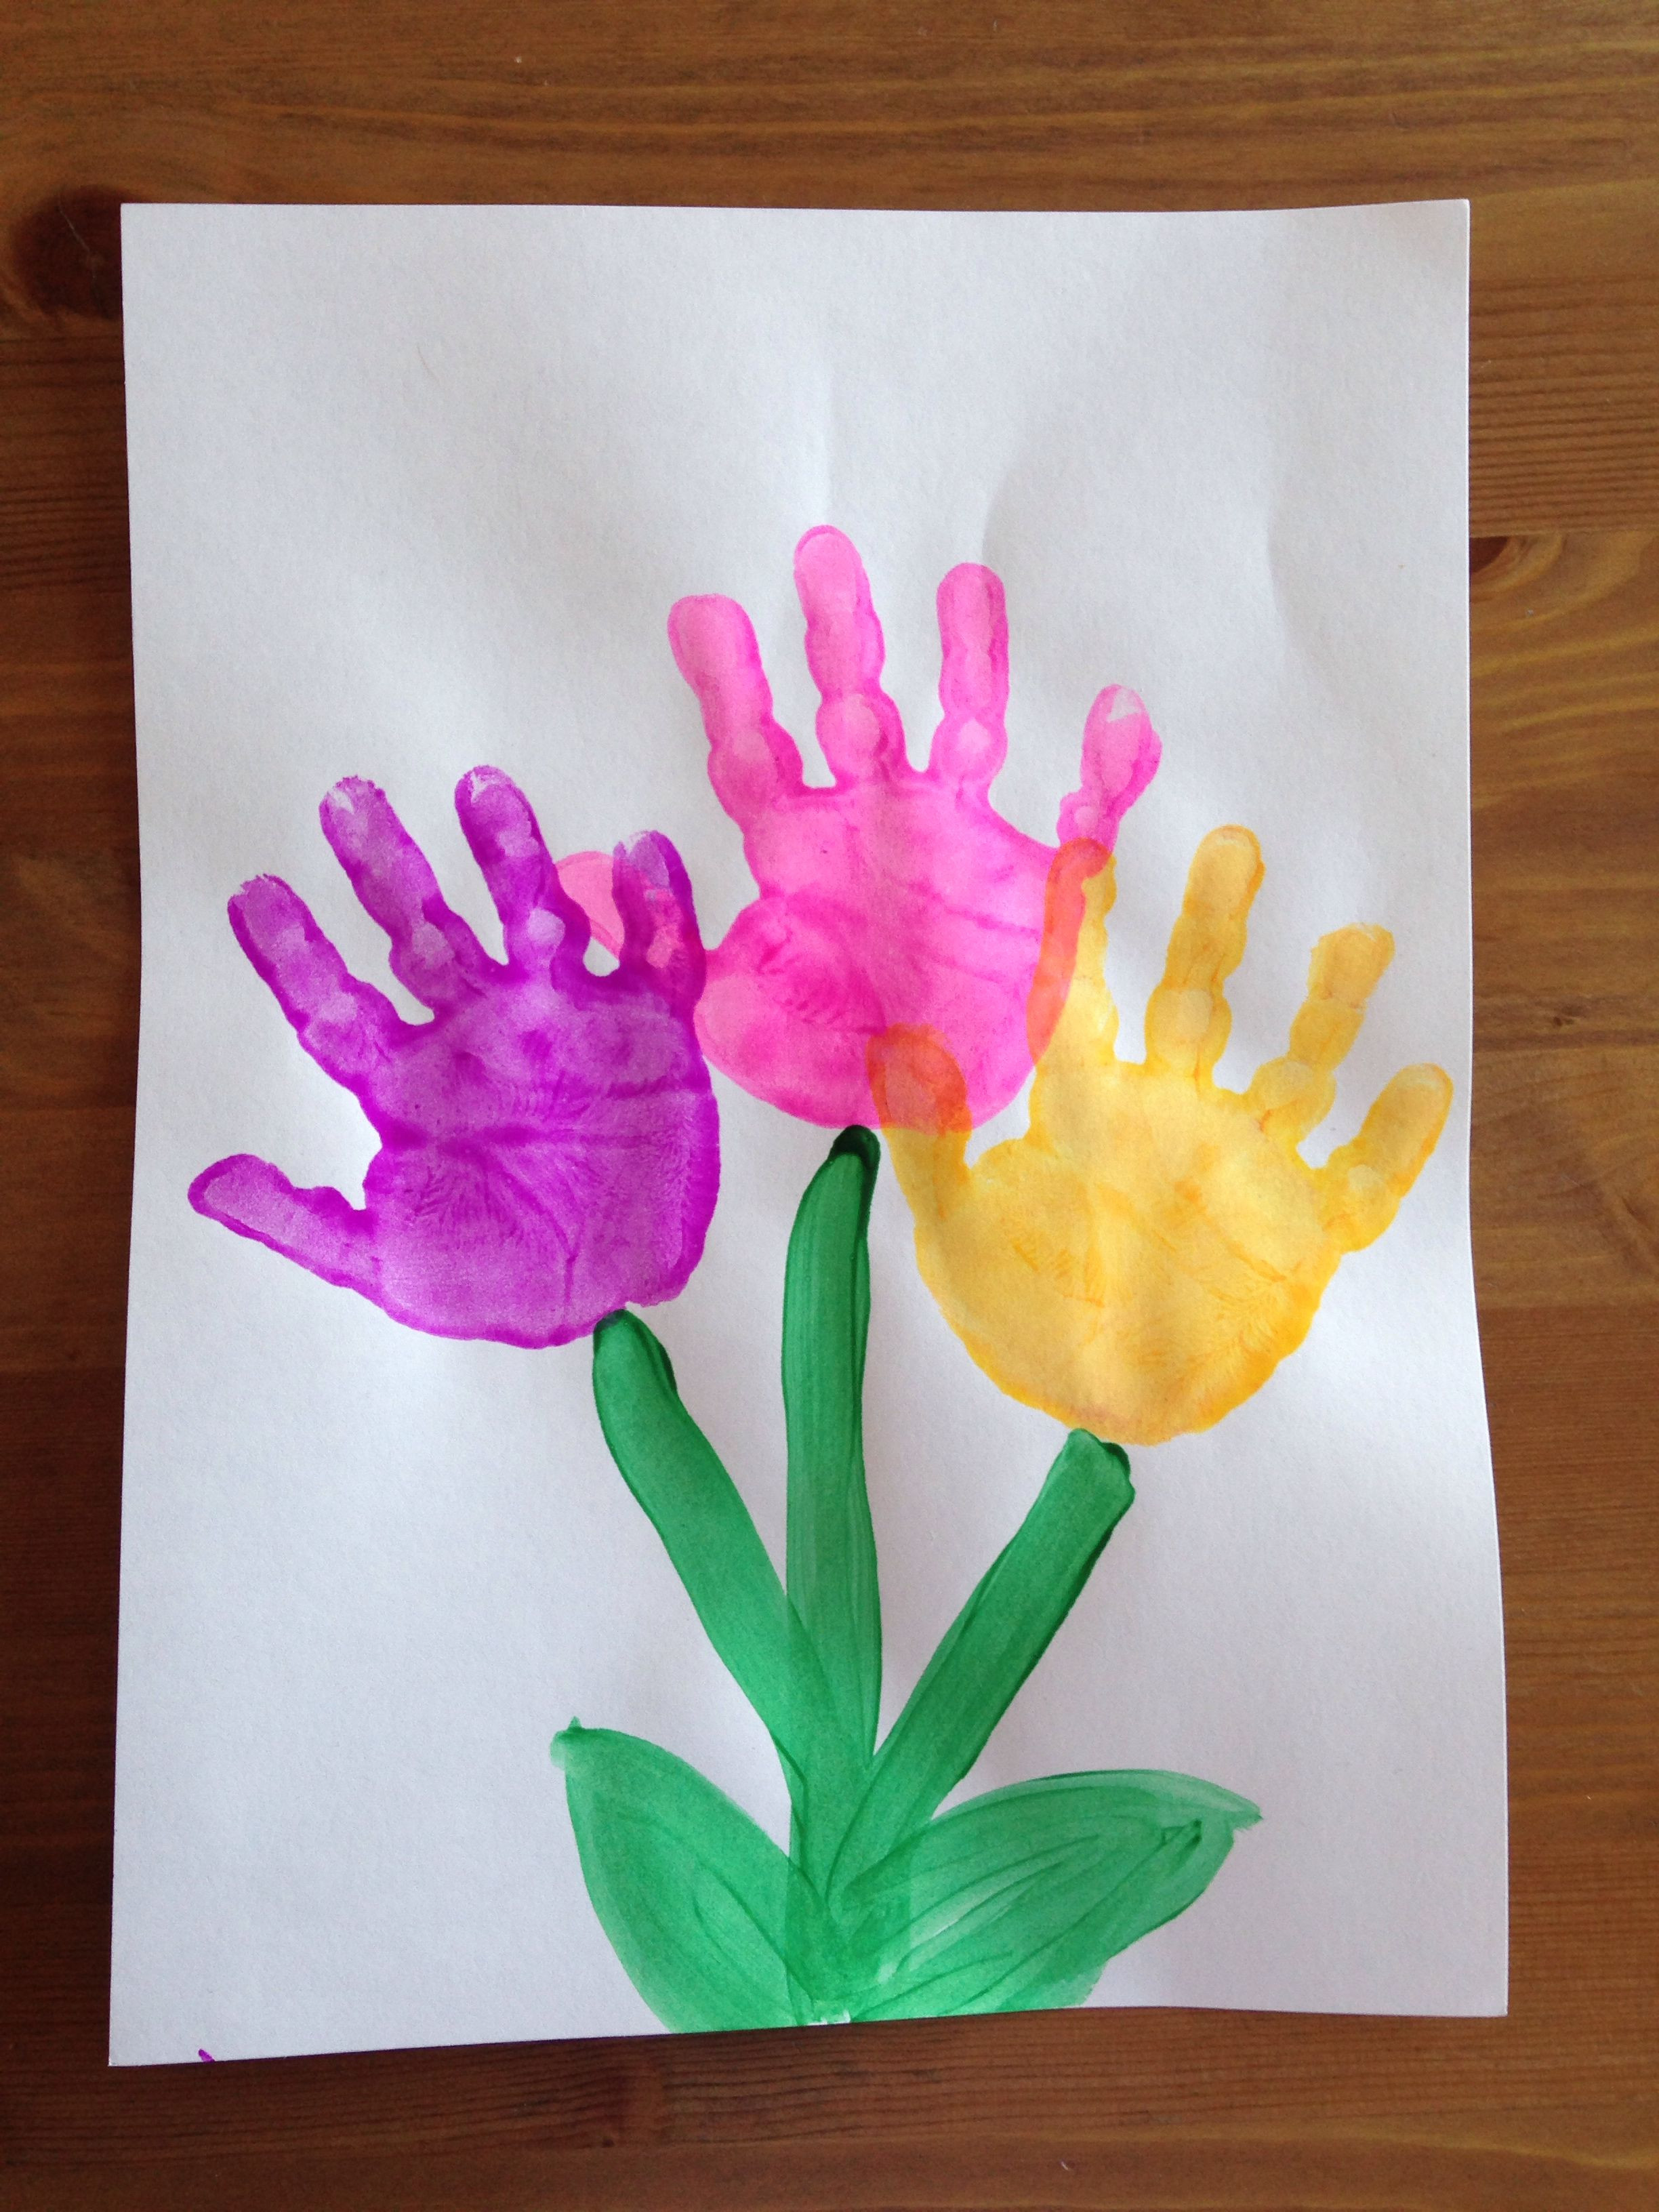 Best ideas about Spring Arts And Crafts For Kids . Save or Pin Handprint Flower Craft Spring Craft Preschool Craft Now.